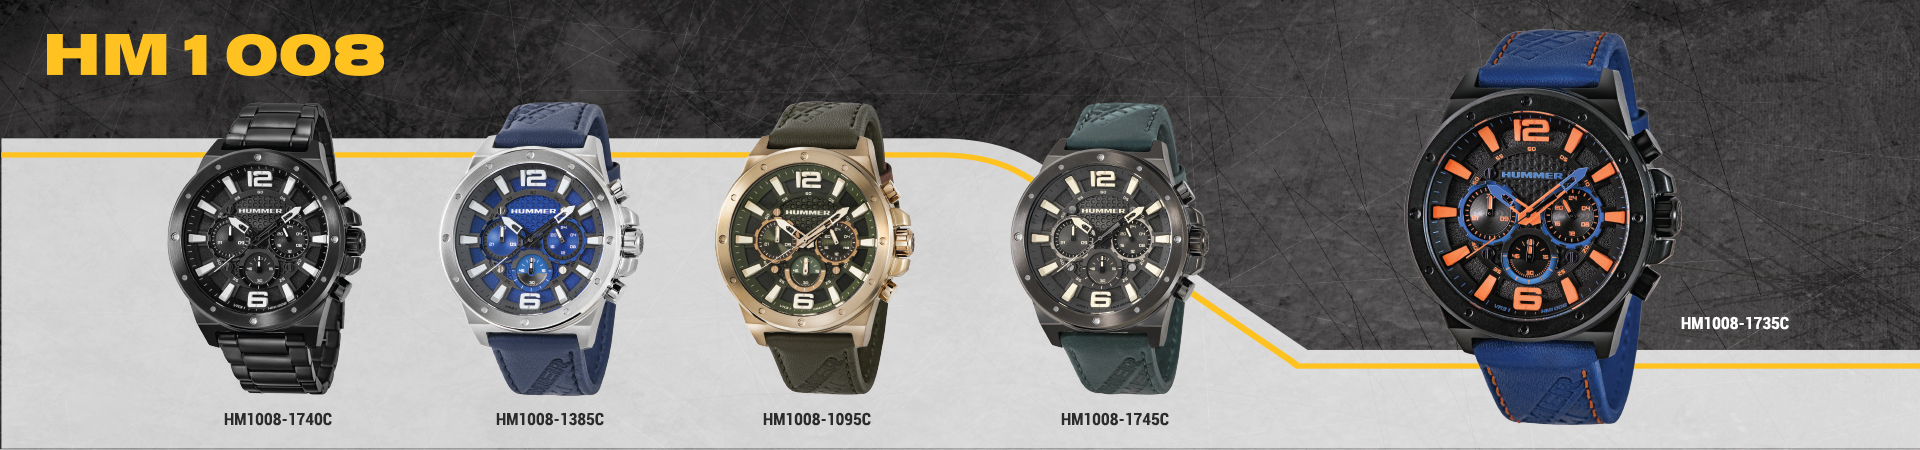 Hummer Watch Collection HM1008